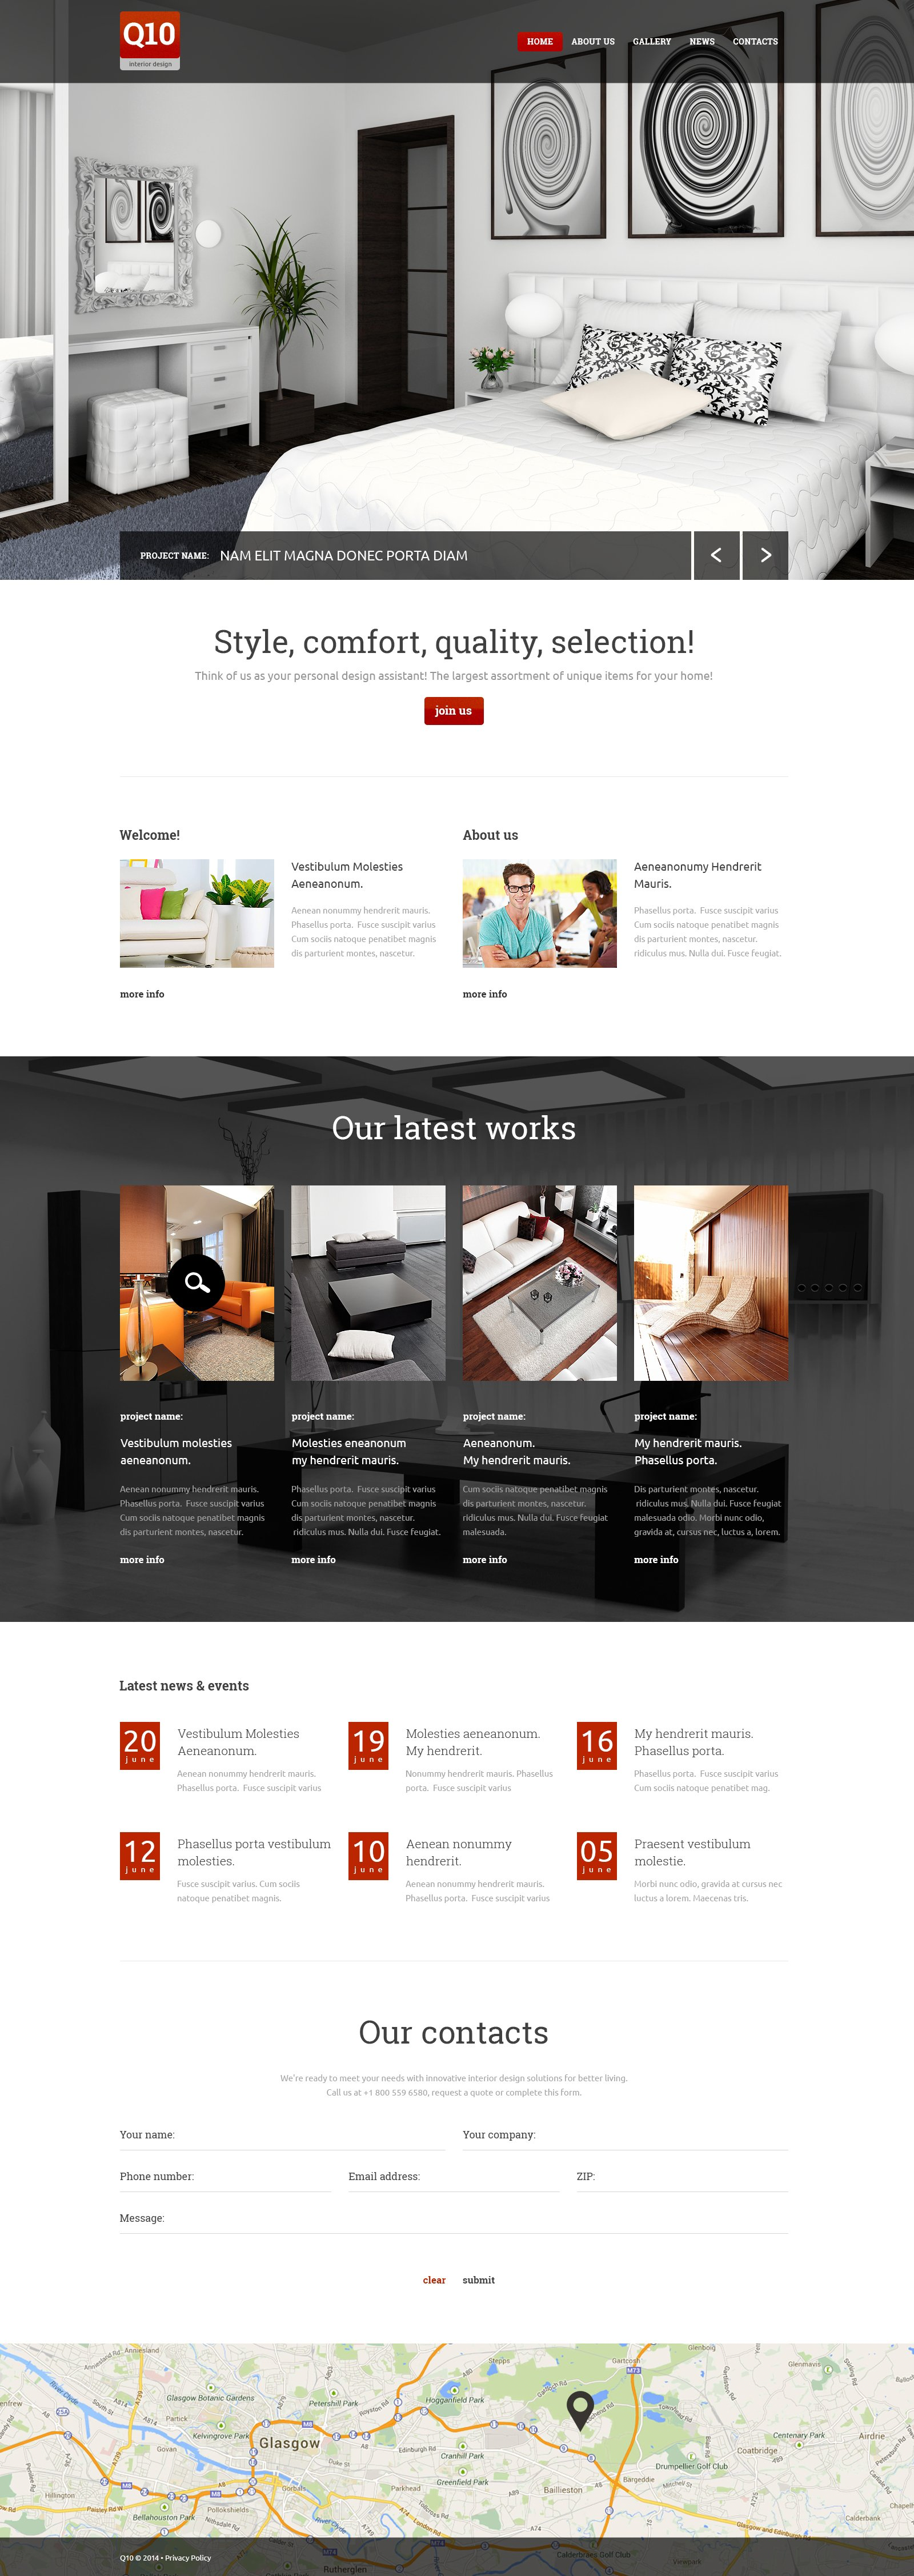 Template Web Bootstrap para Sites de Design Interior №49532 - screenshot